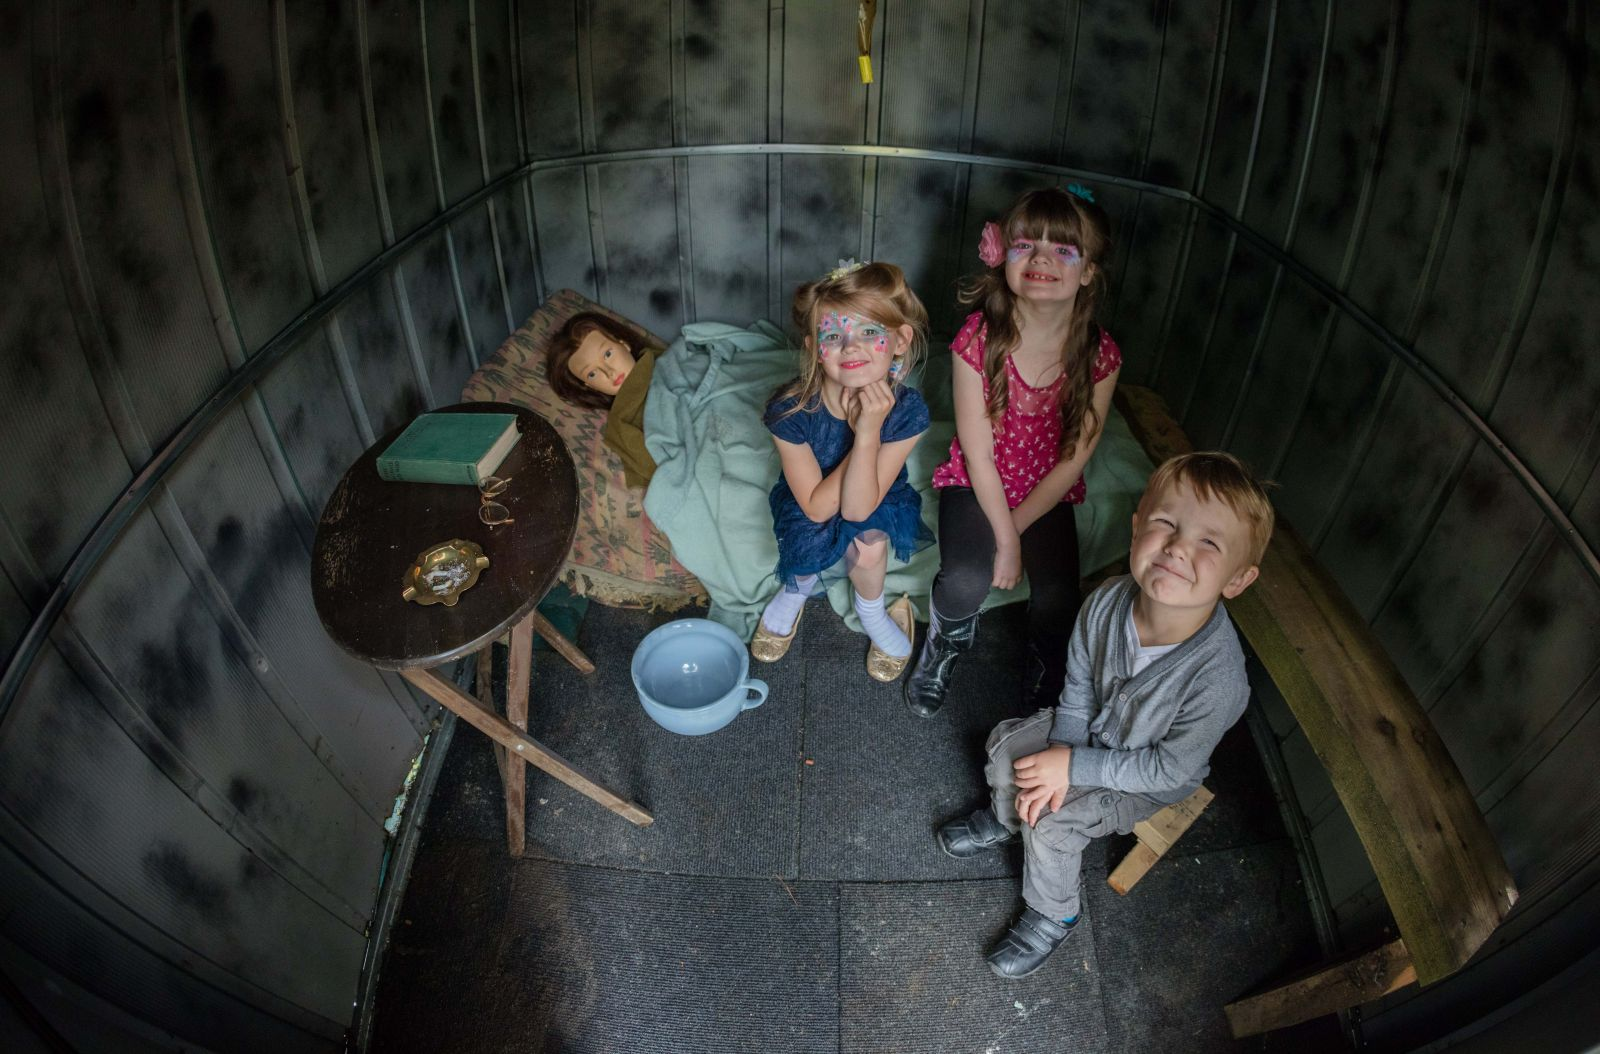 Historical bomb shelter mock up at Chesham Fold TRA's vintage event